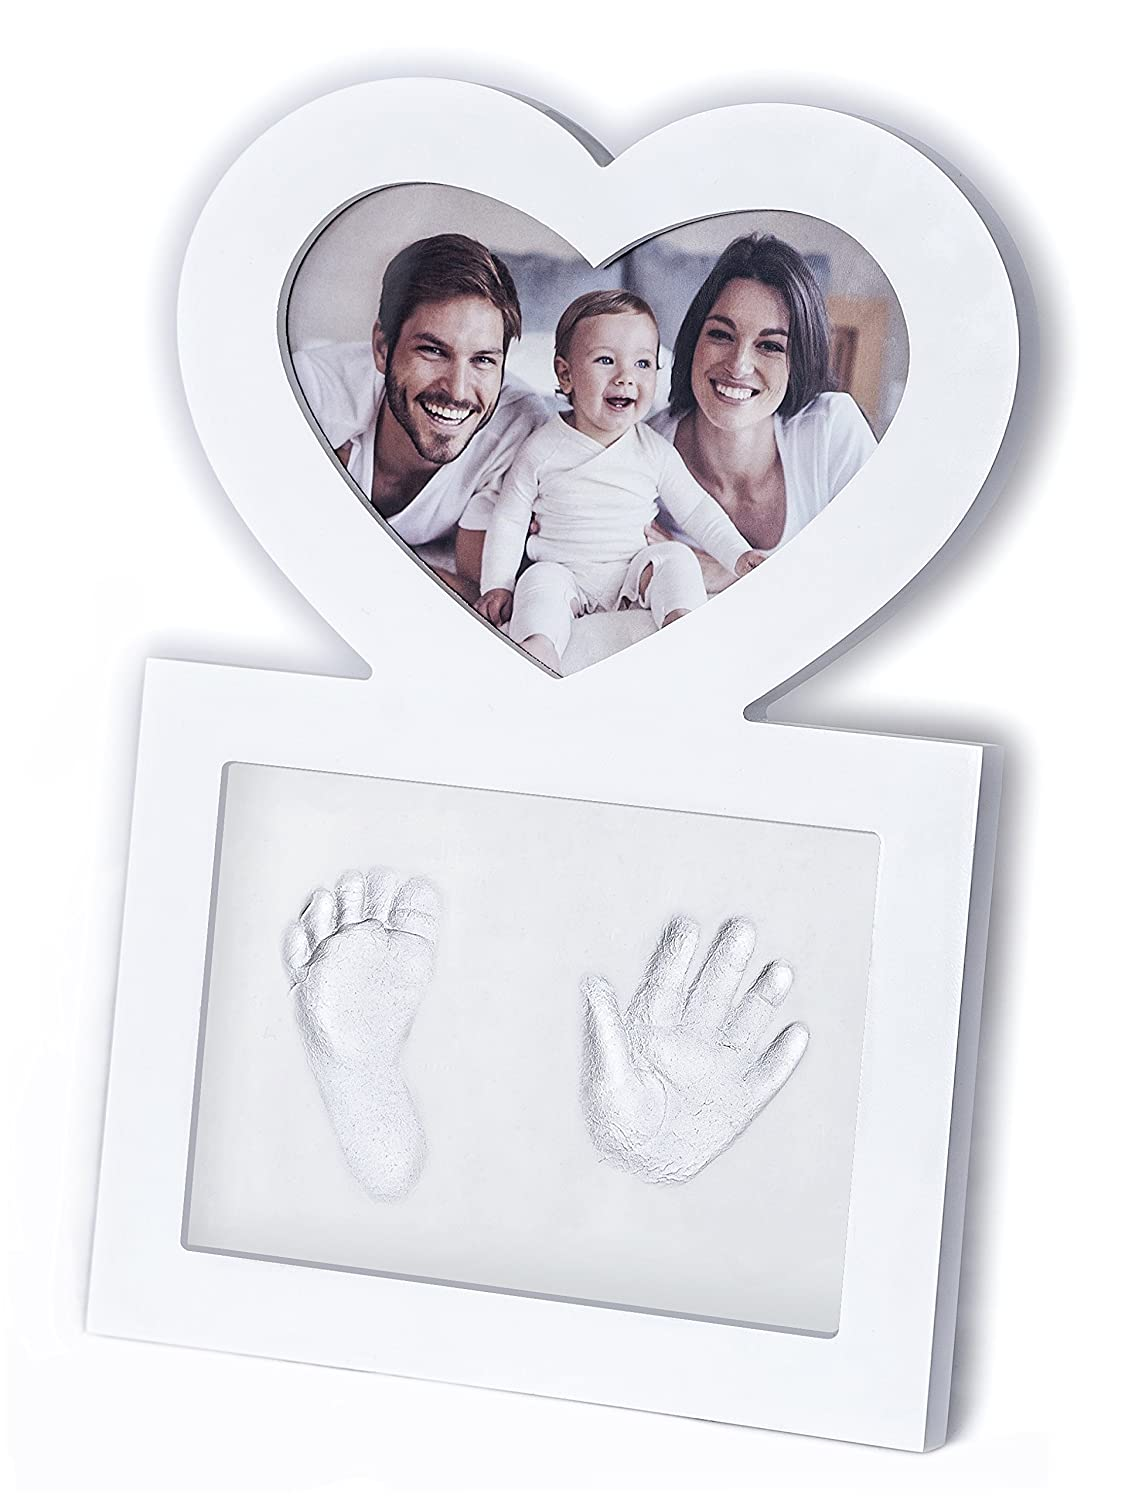 Click & Clay - Baby Hand and Footprint Kit, Baby Shower Gift Idea, Heart Shaped Picture Frame, White FTM eCommerce